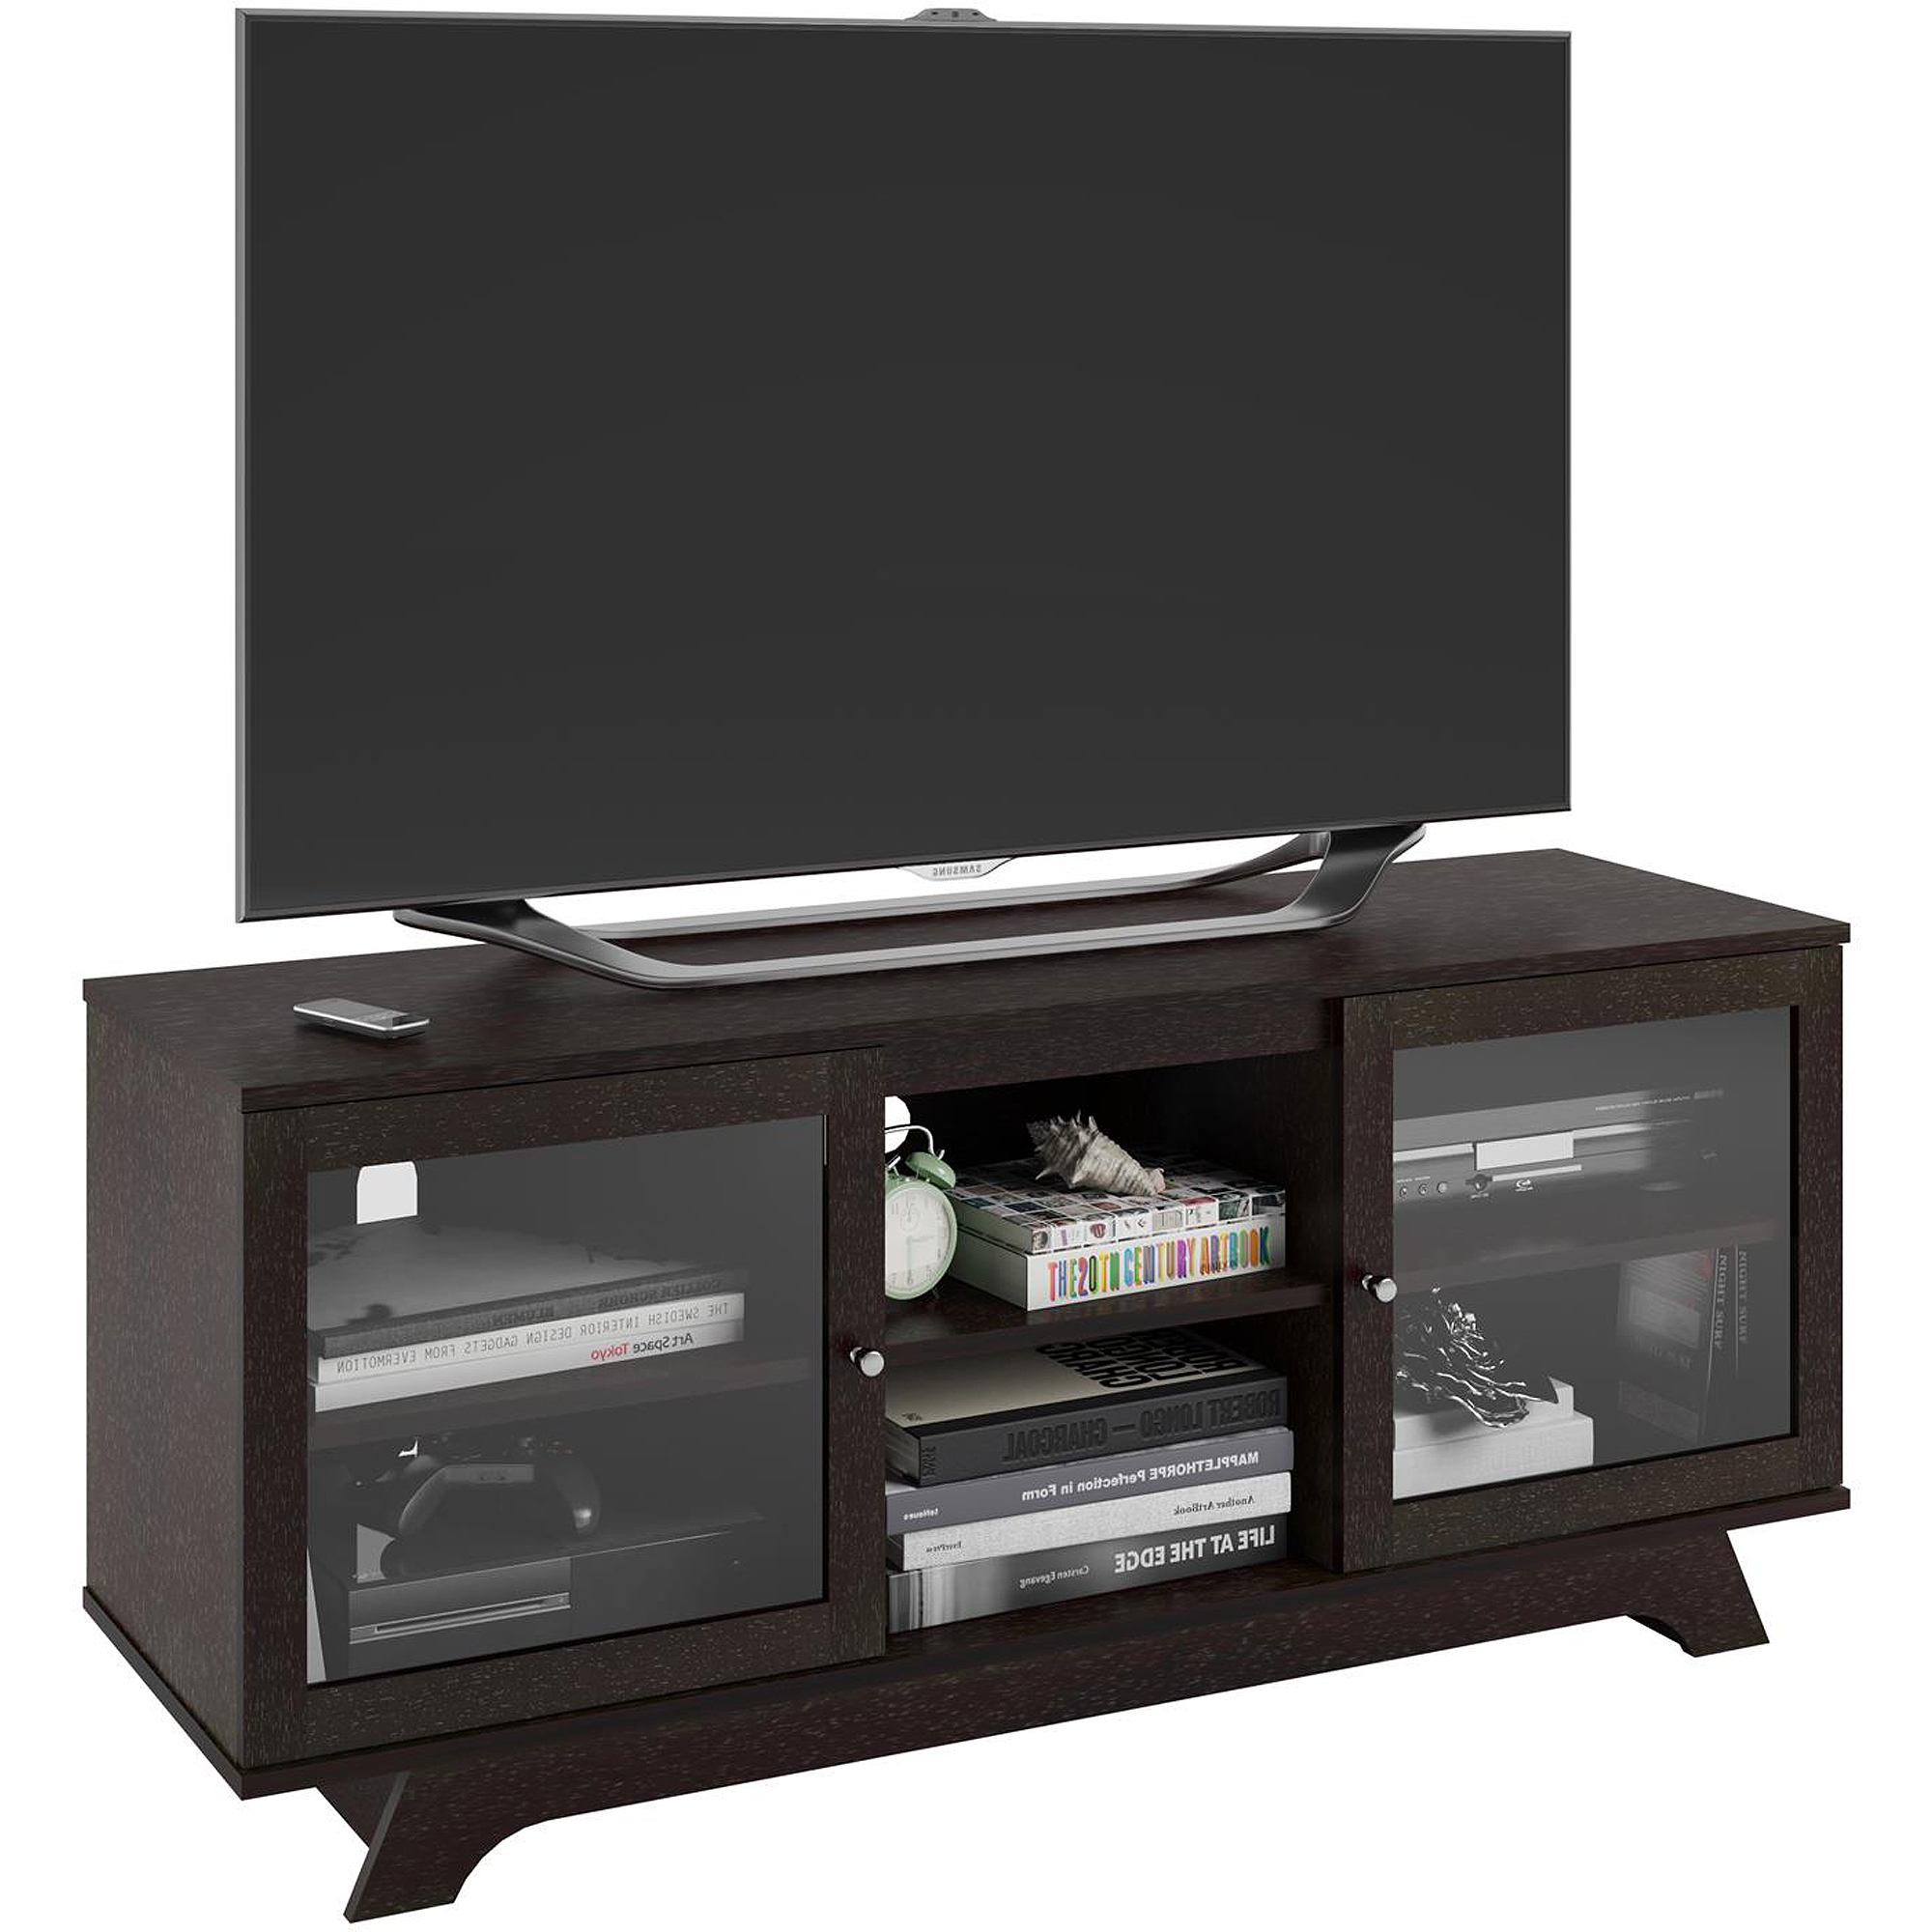 "Favorite Ameriwood Home Englewood Tv Stand For Tvs Up To 55"", Espresso Throughout Oak Tv Stands With Glass Doors (Gallery 19 of 20)"